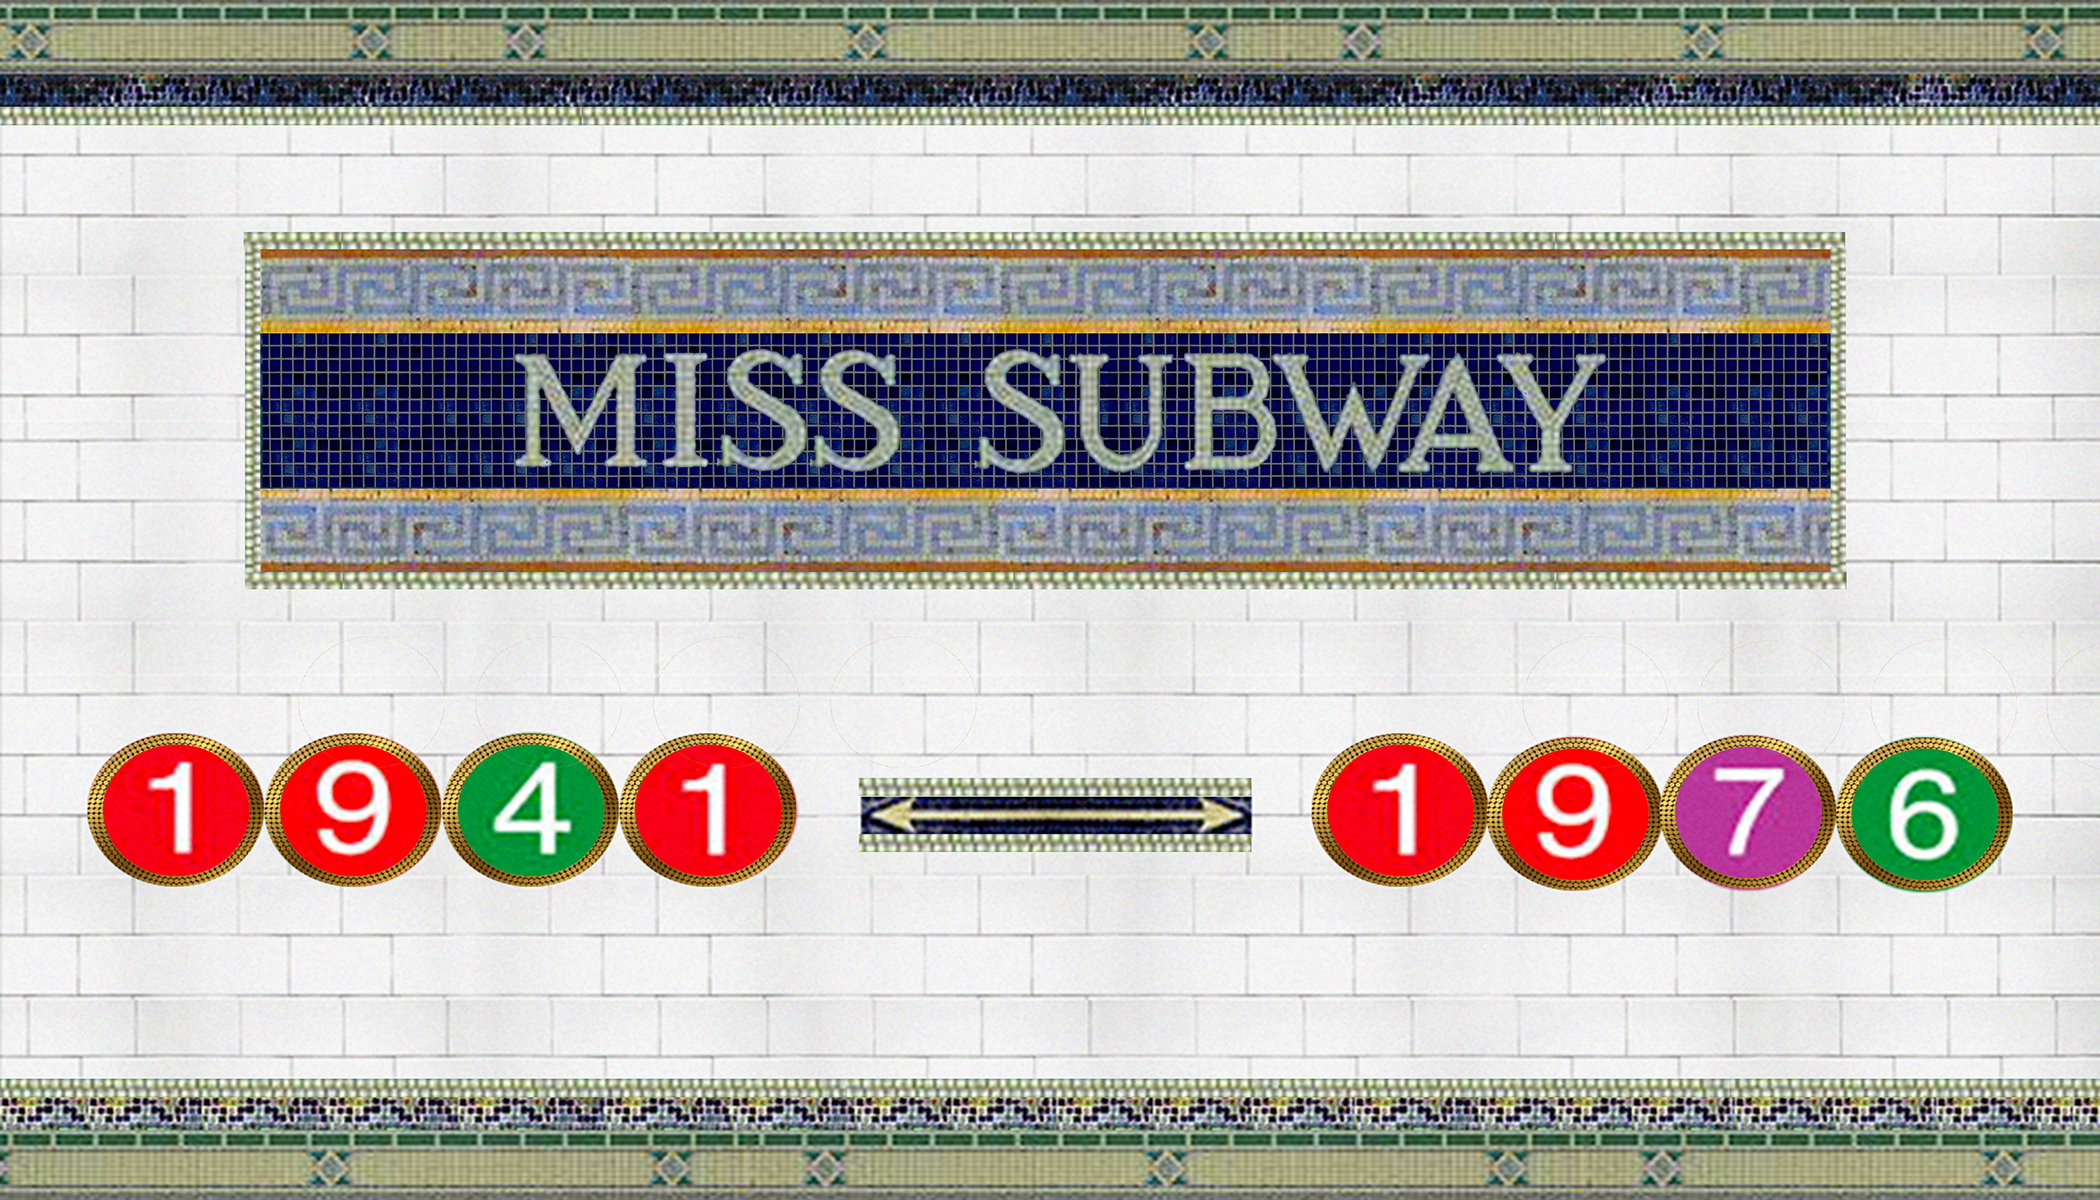 1miss subway cover copy.jpg